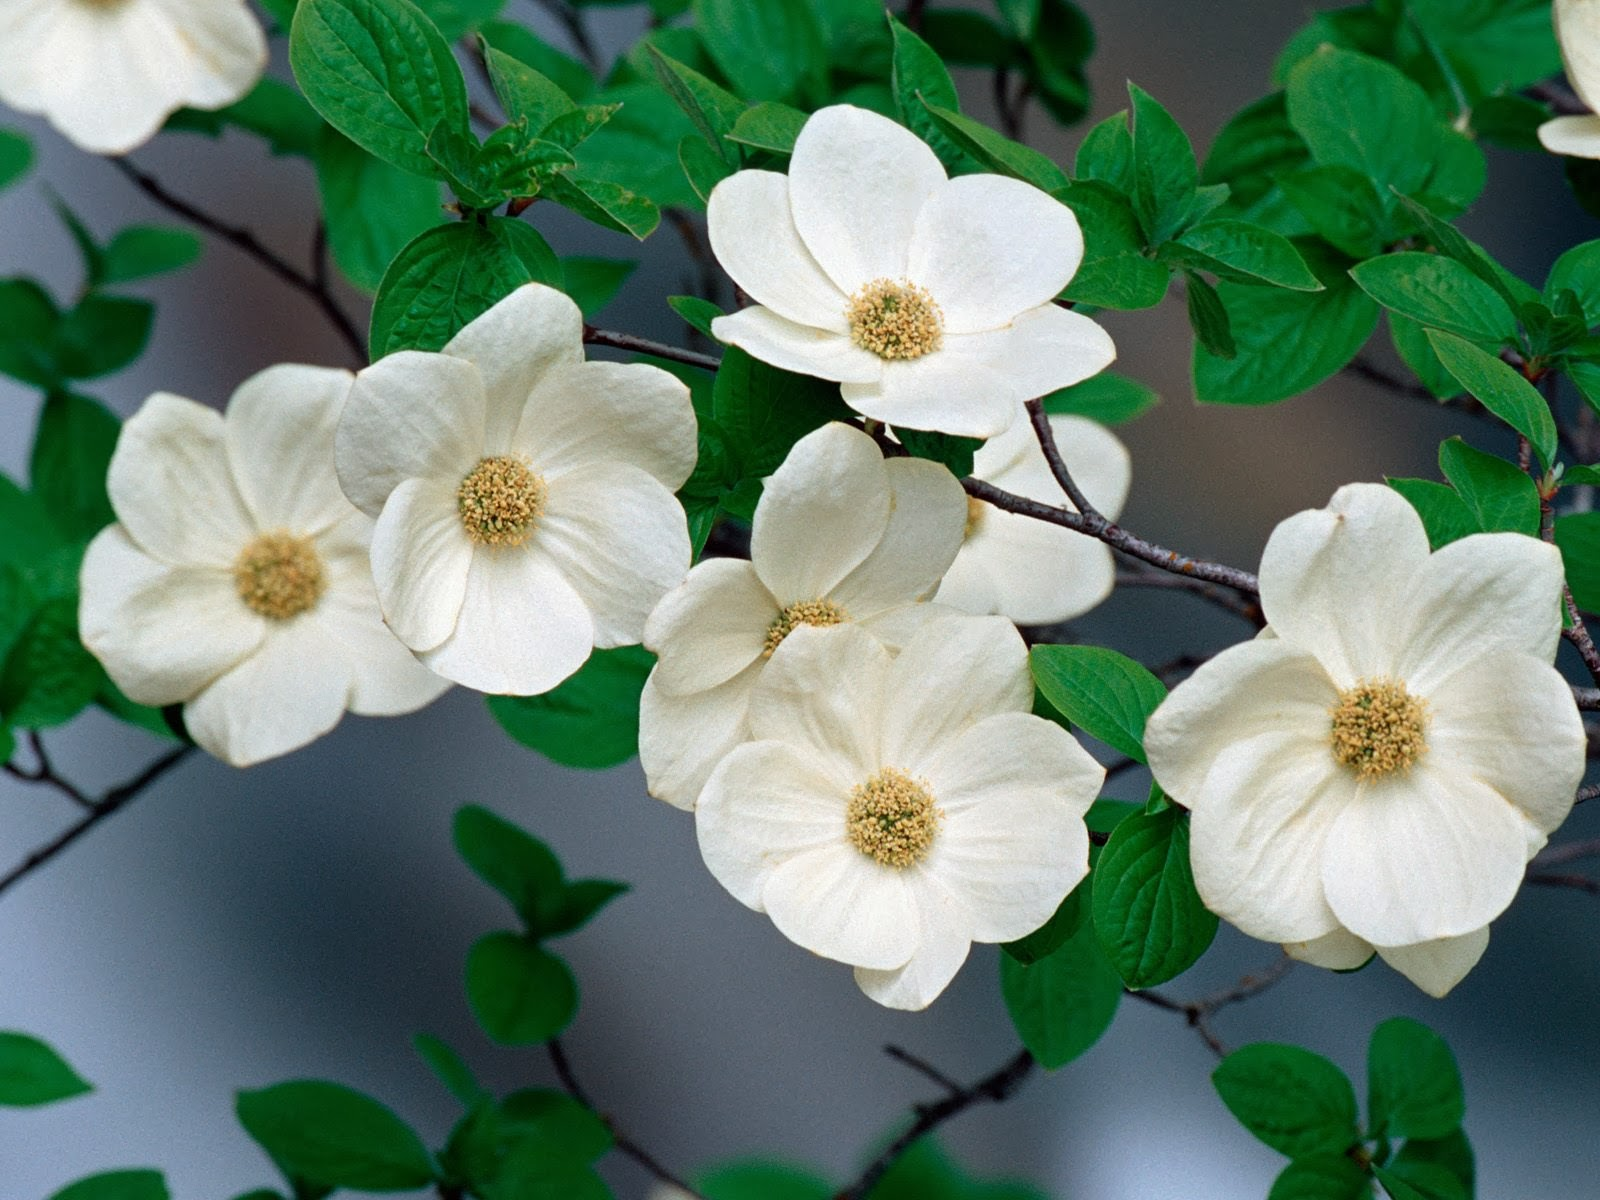 dogwood tree flower meaning, Natural flower